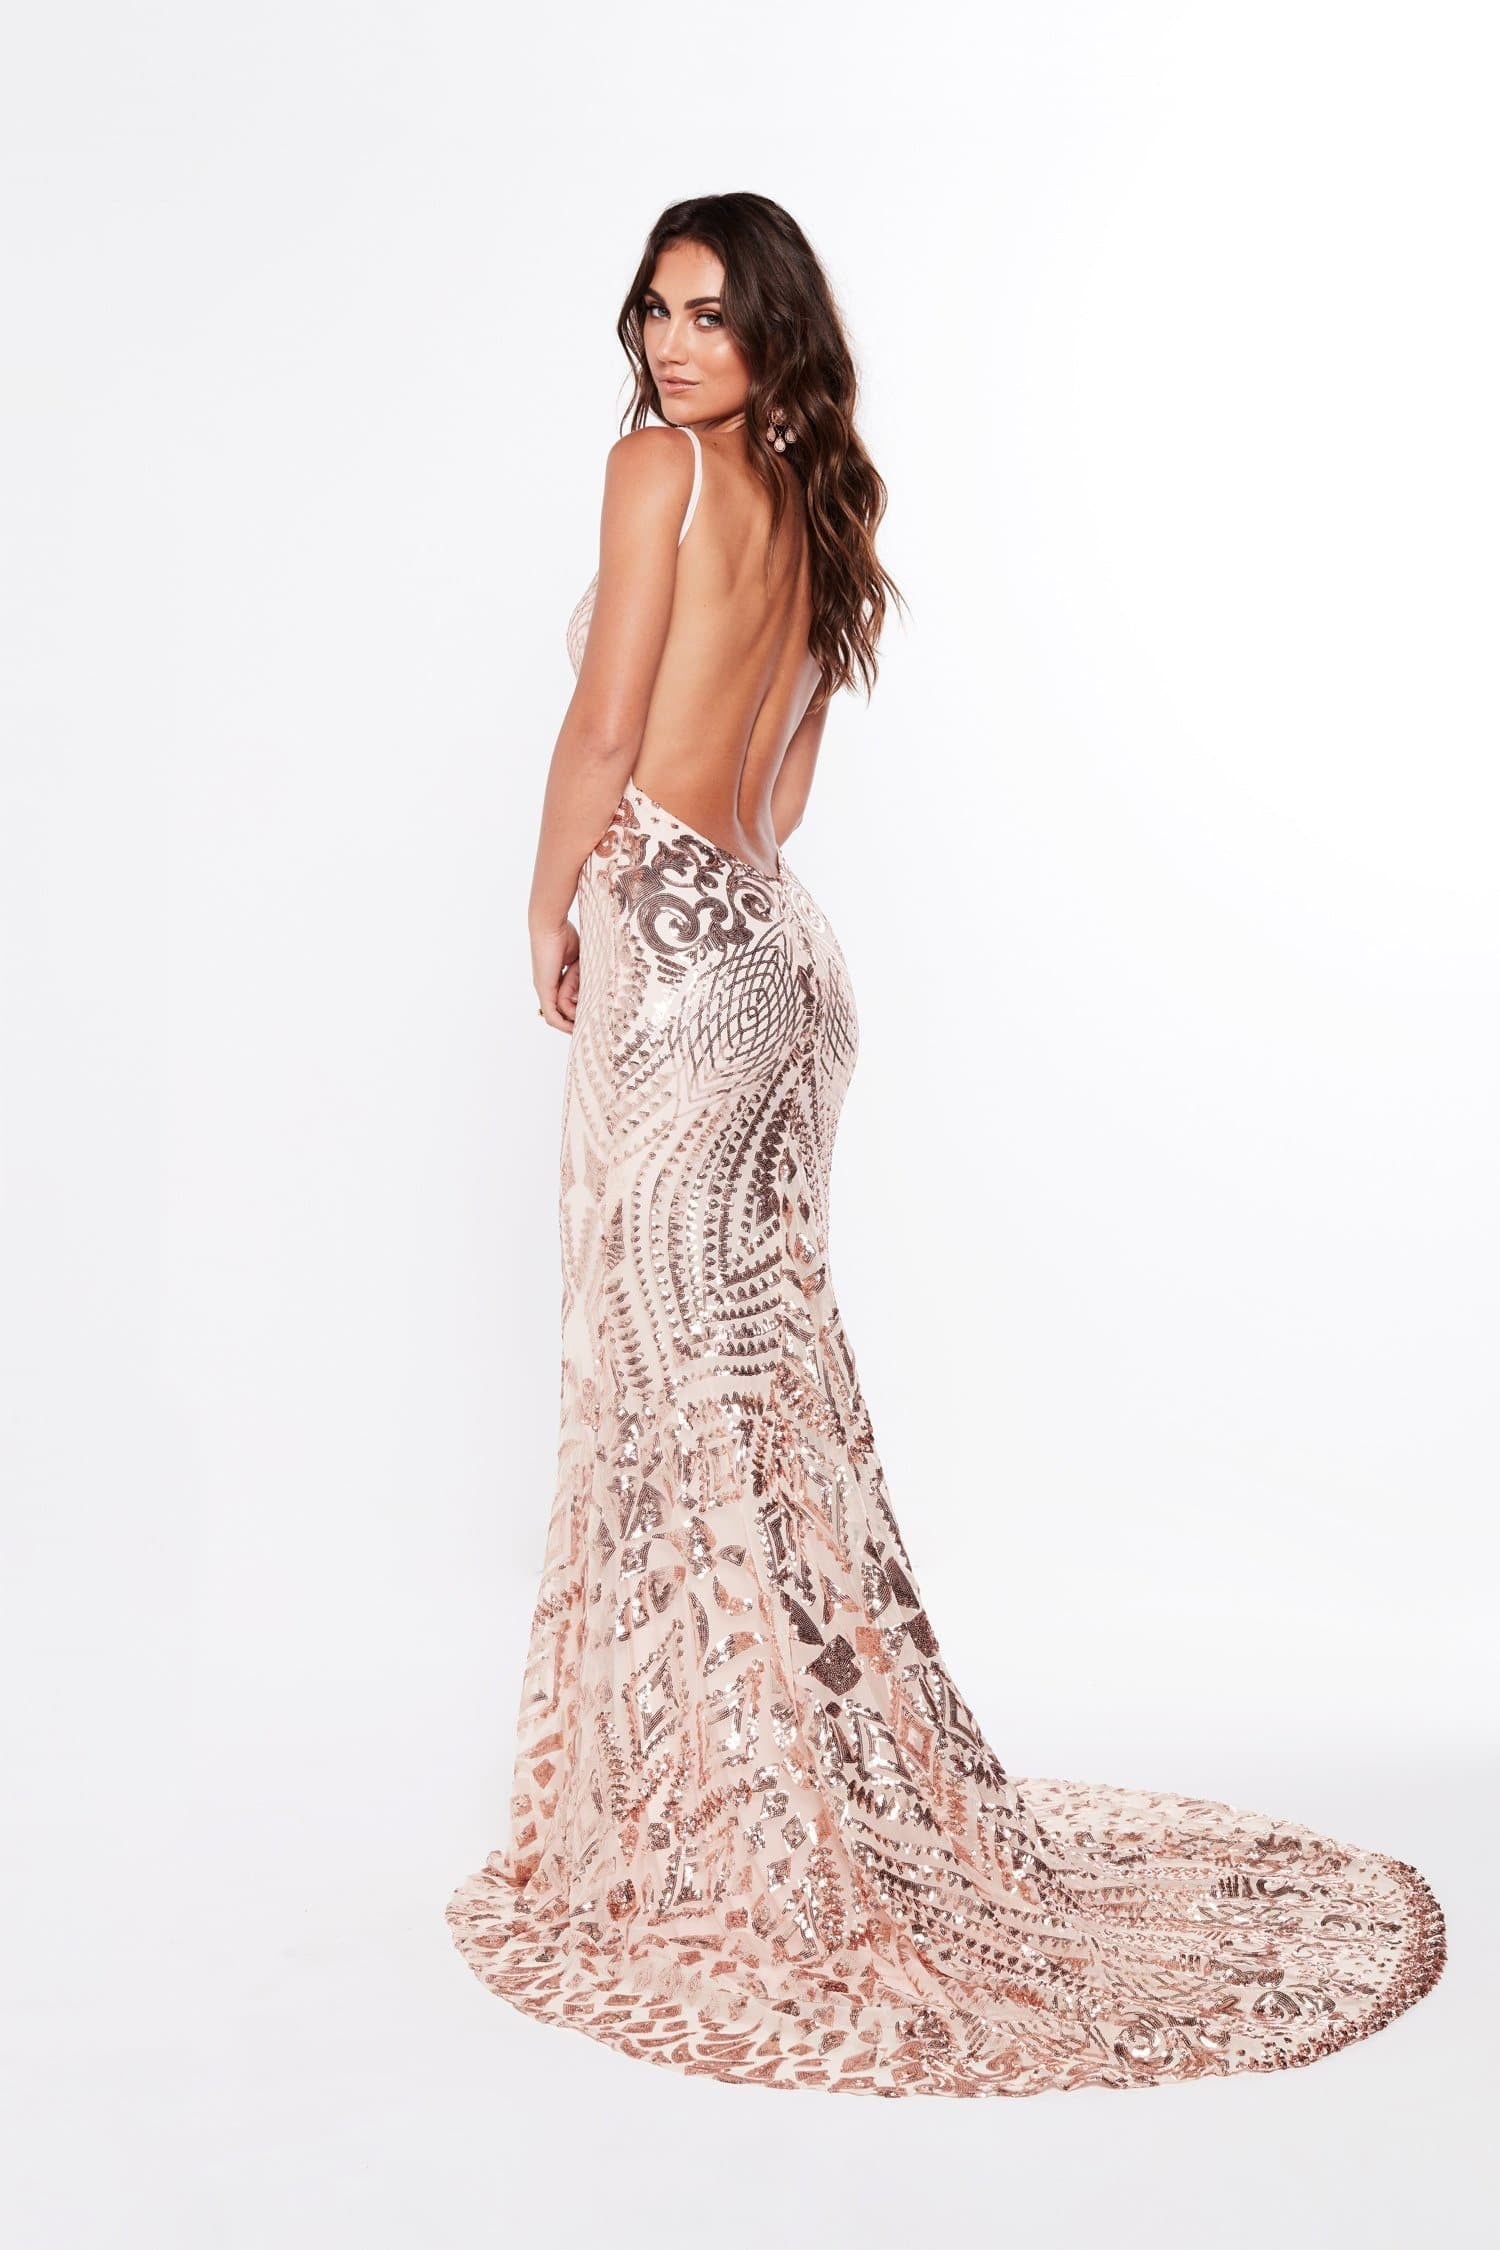 A&N Mariana - Rose Gold Sequin Gown with Low Back – A&N Boutique